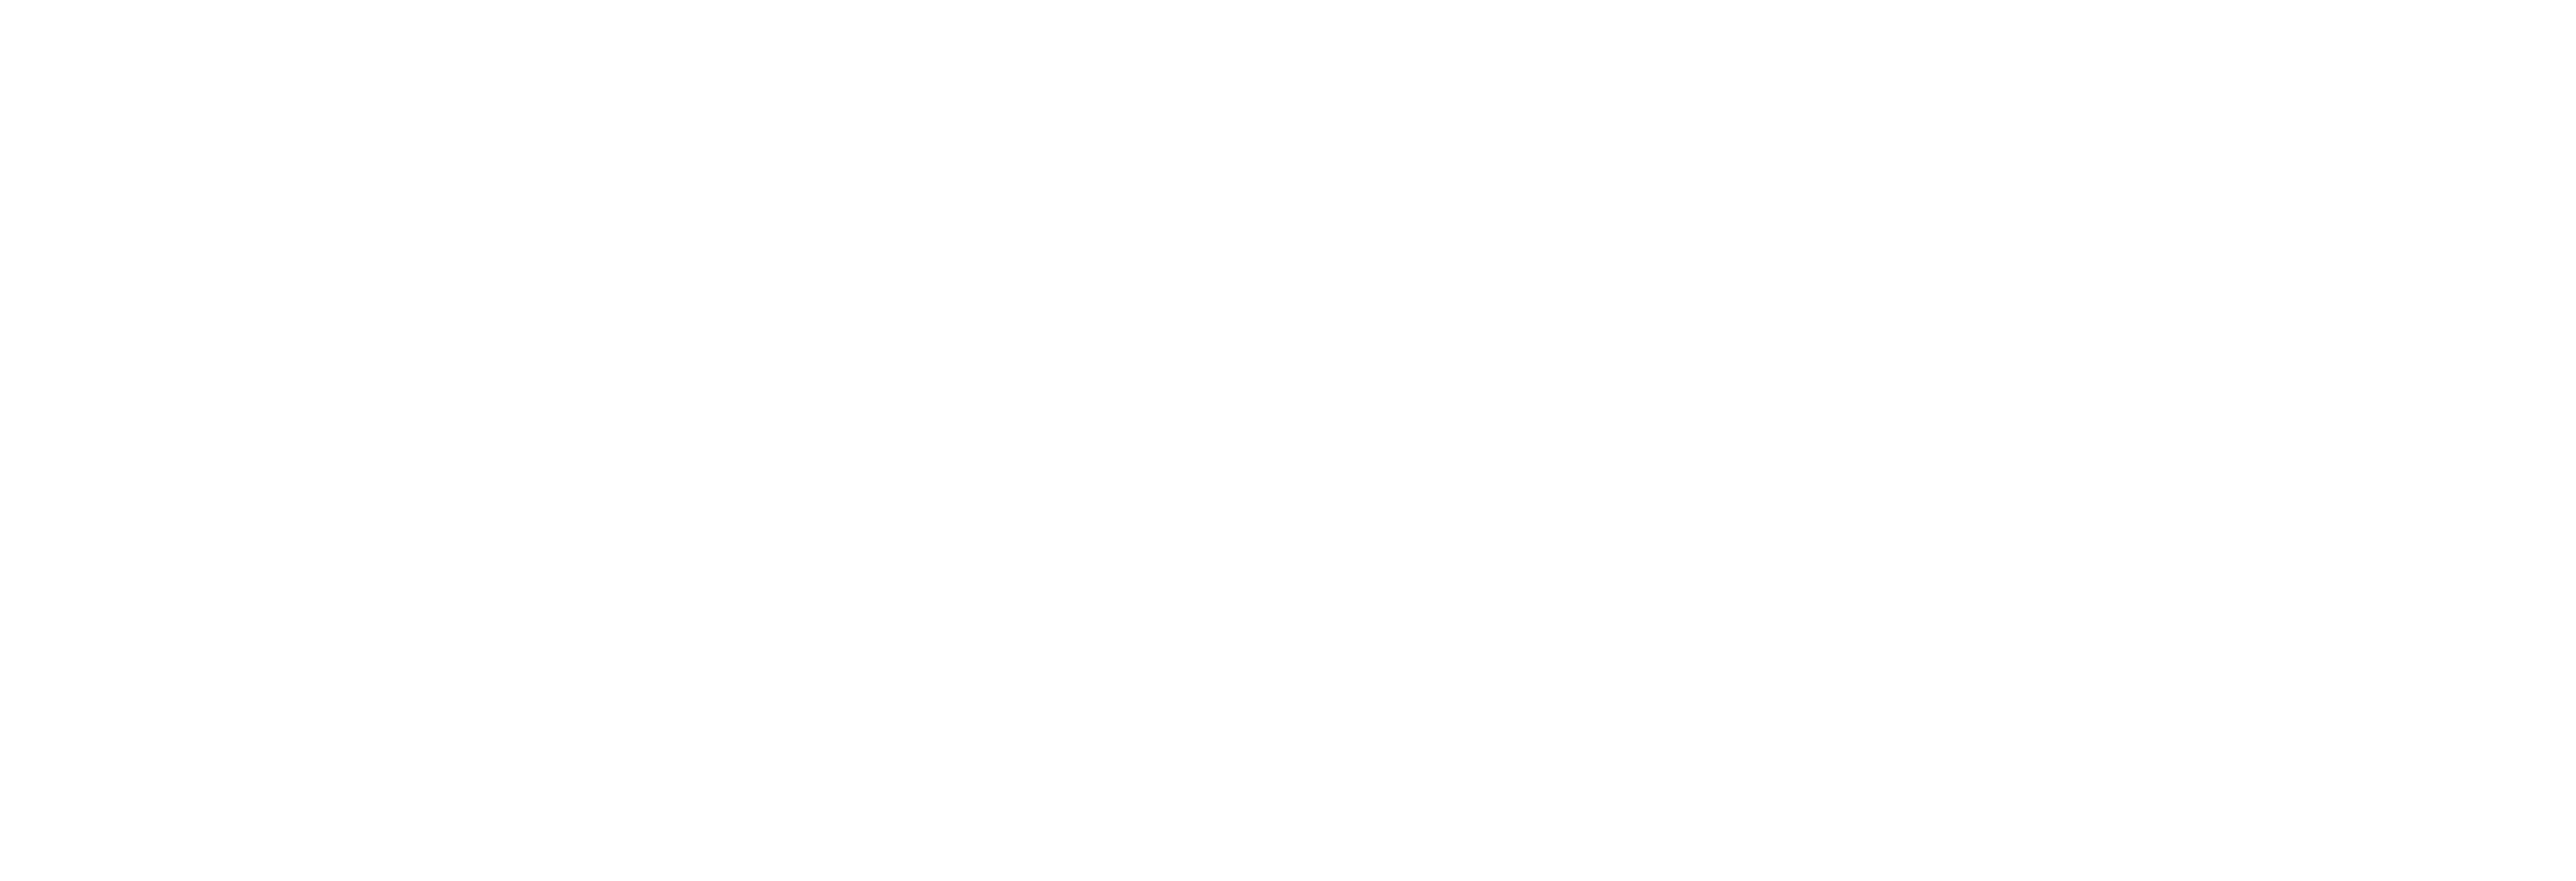 Het Drents Kwartiertje